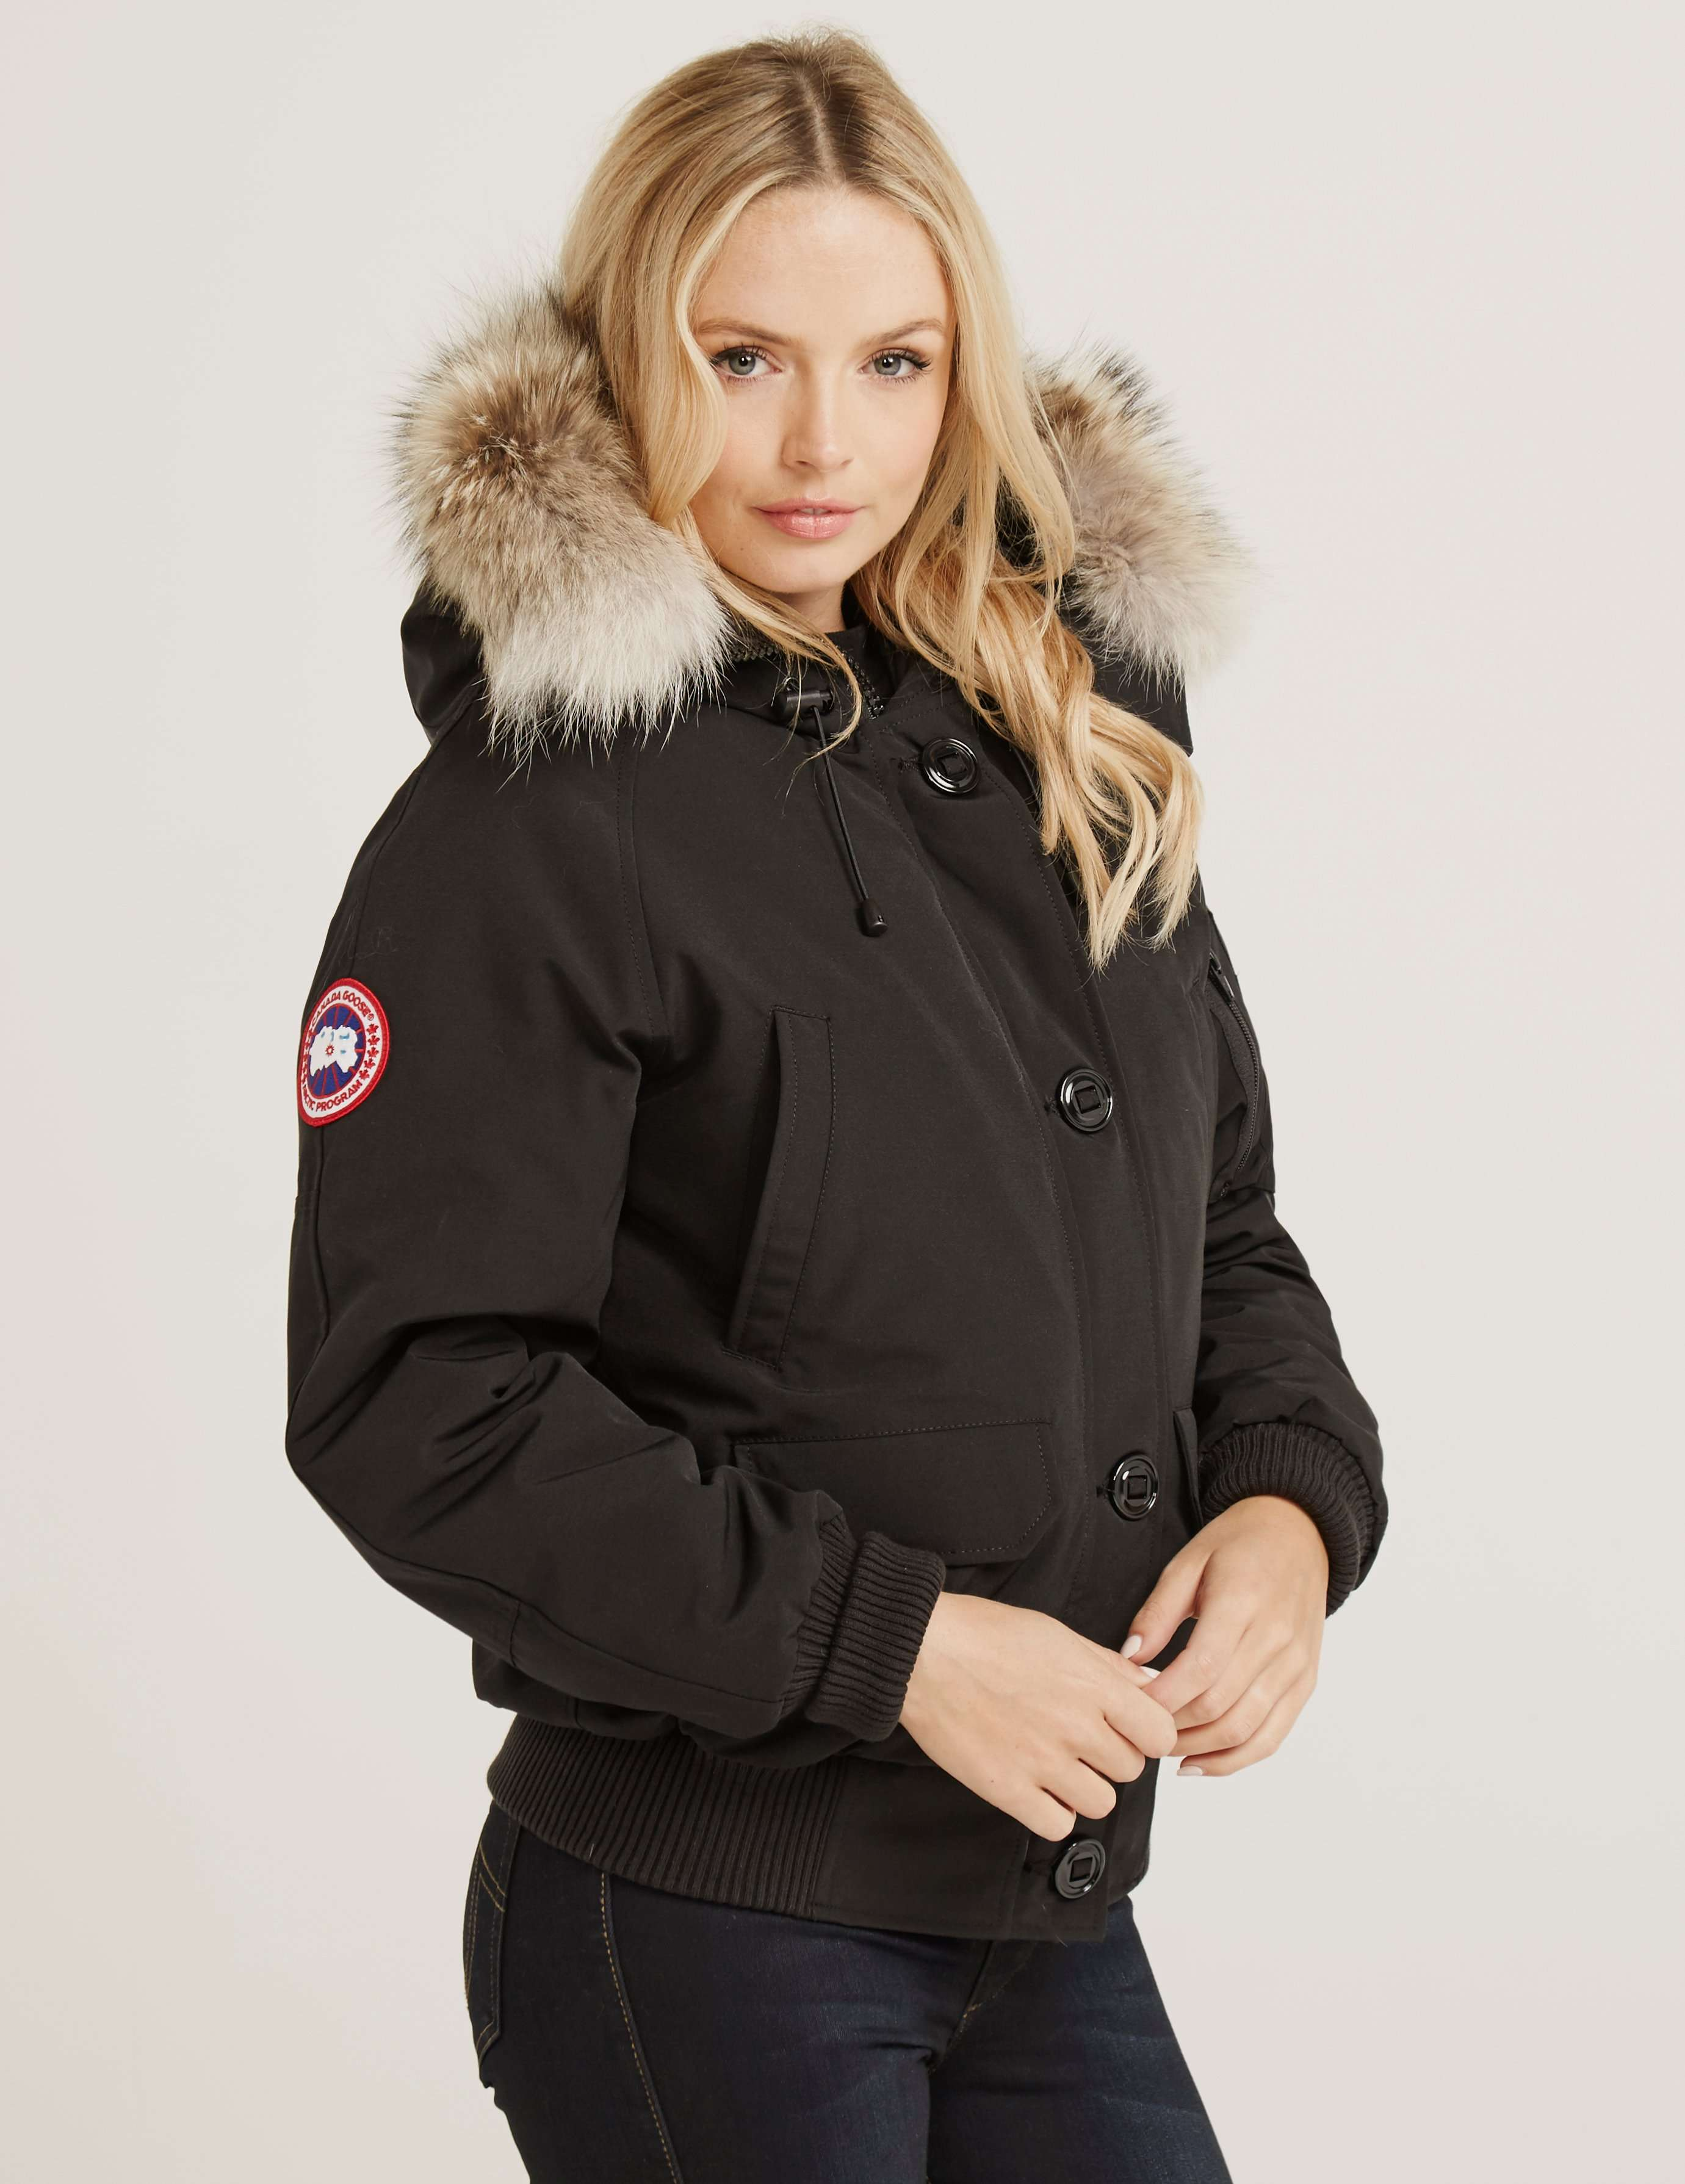 chilliwack black single women The women's chilliwack bomber encapsulates the iconic style of bush pilots in the canadian arctic canada goose encapsulates the iconic style of bush pilots in the canadian arctic.